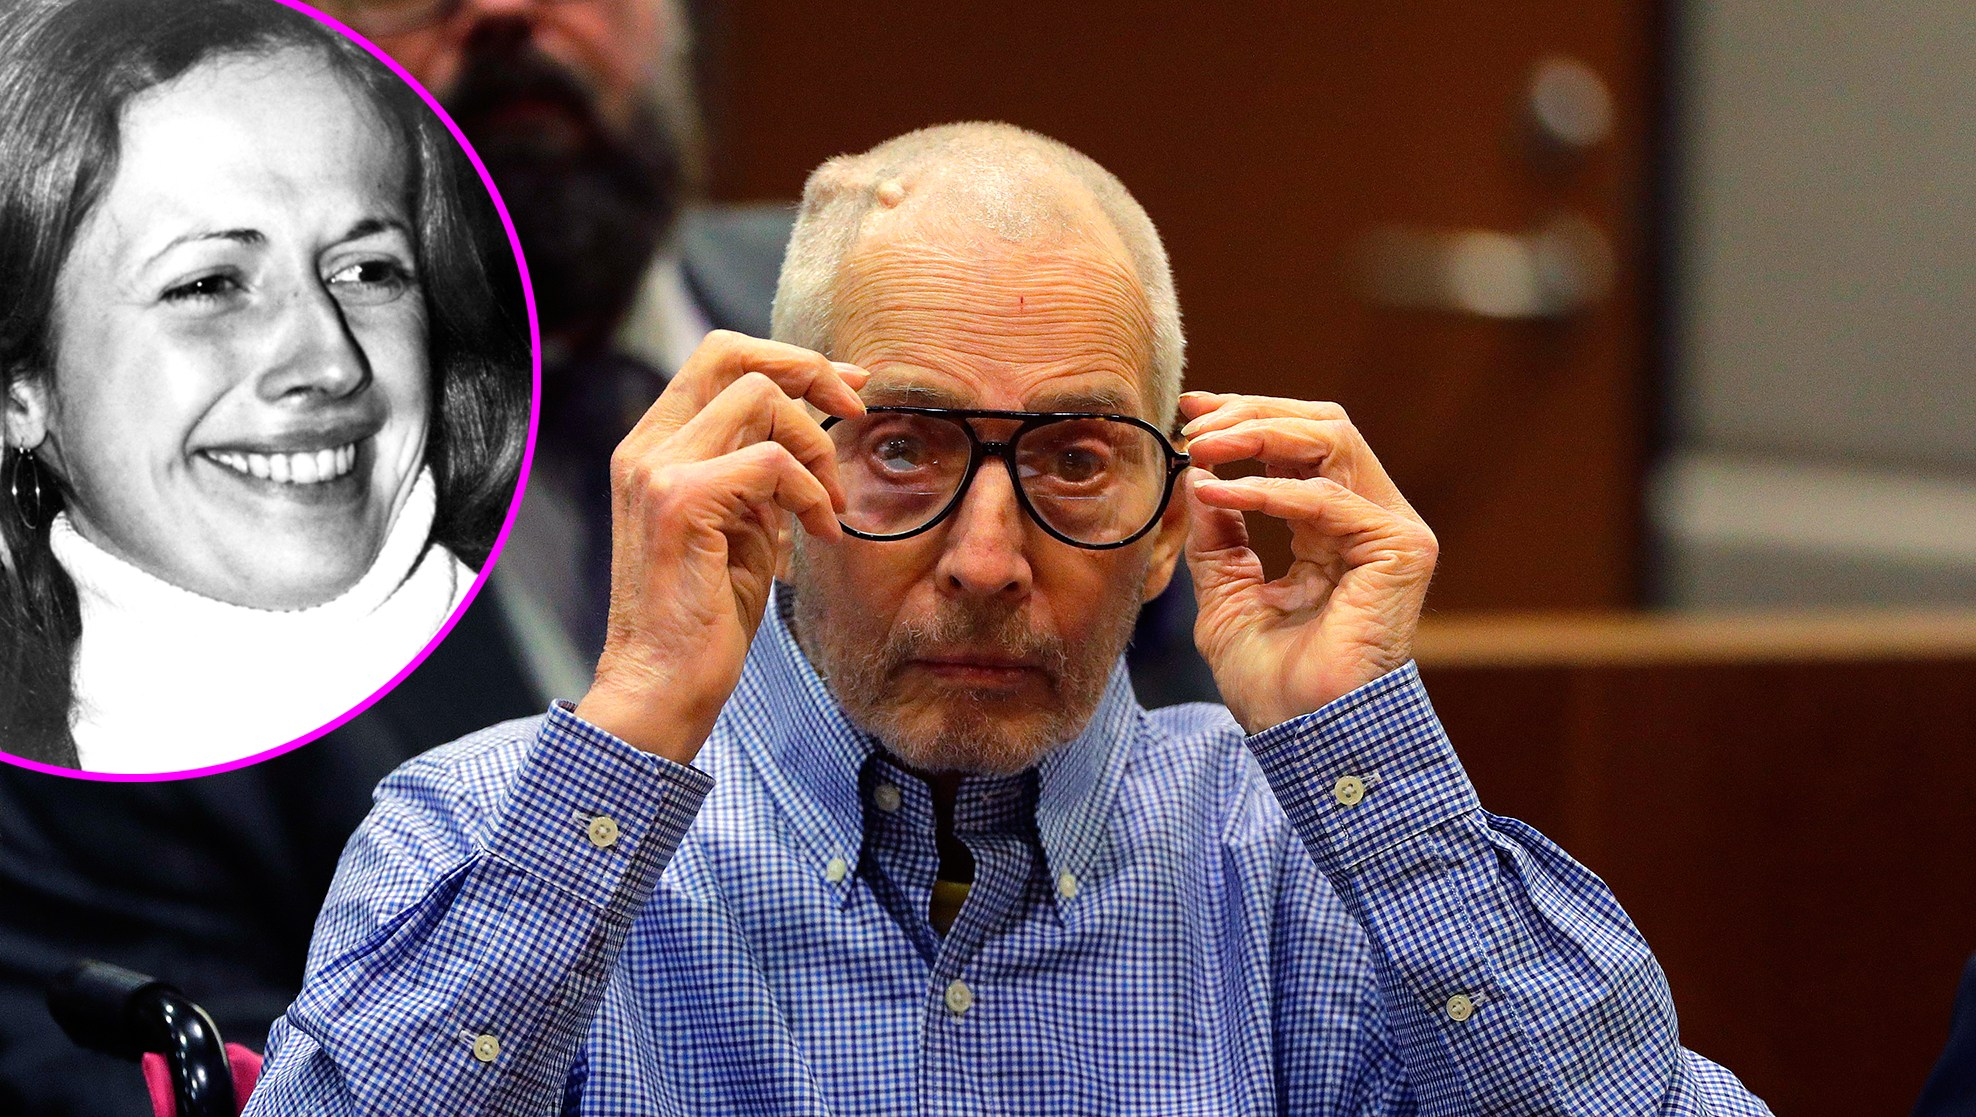 Kathleen Durst's Brother: Robert Durst 'Believed That He Could Get Away With Anything'